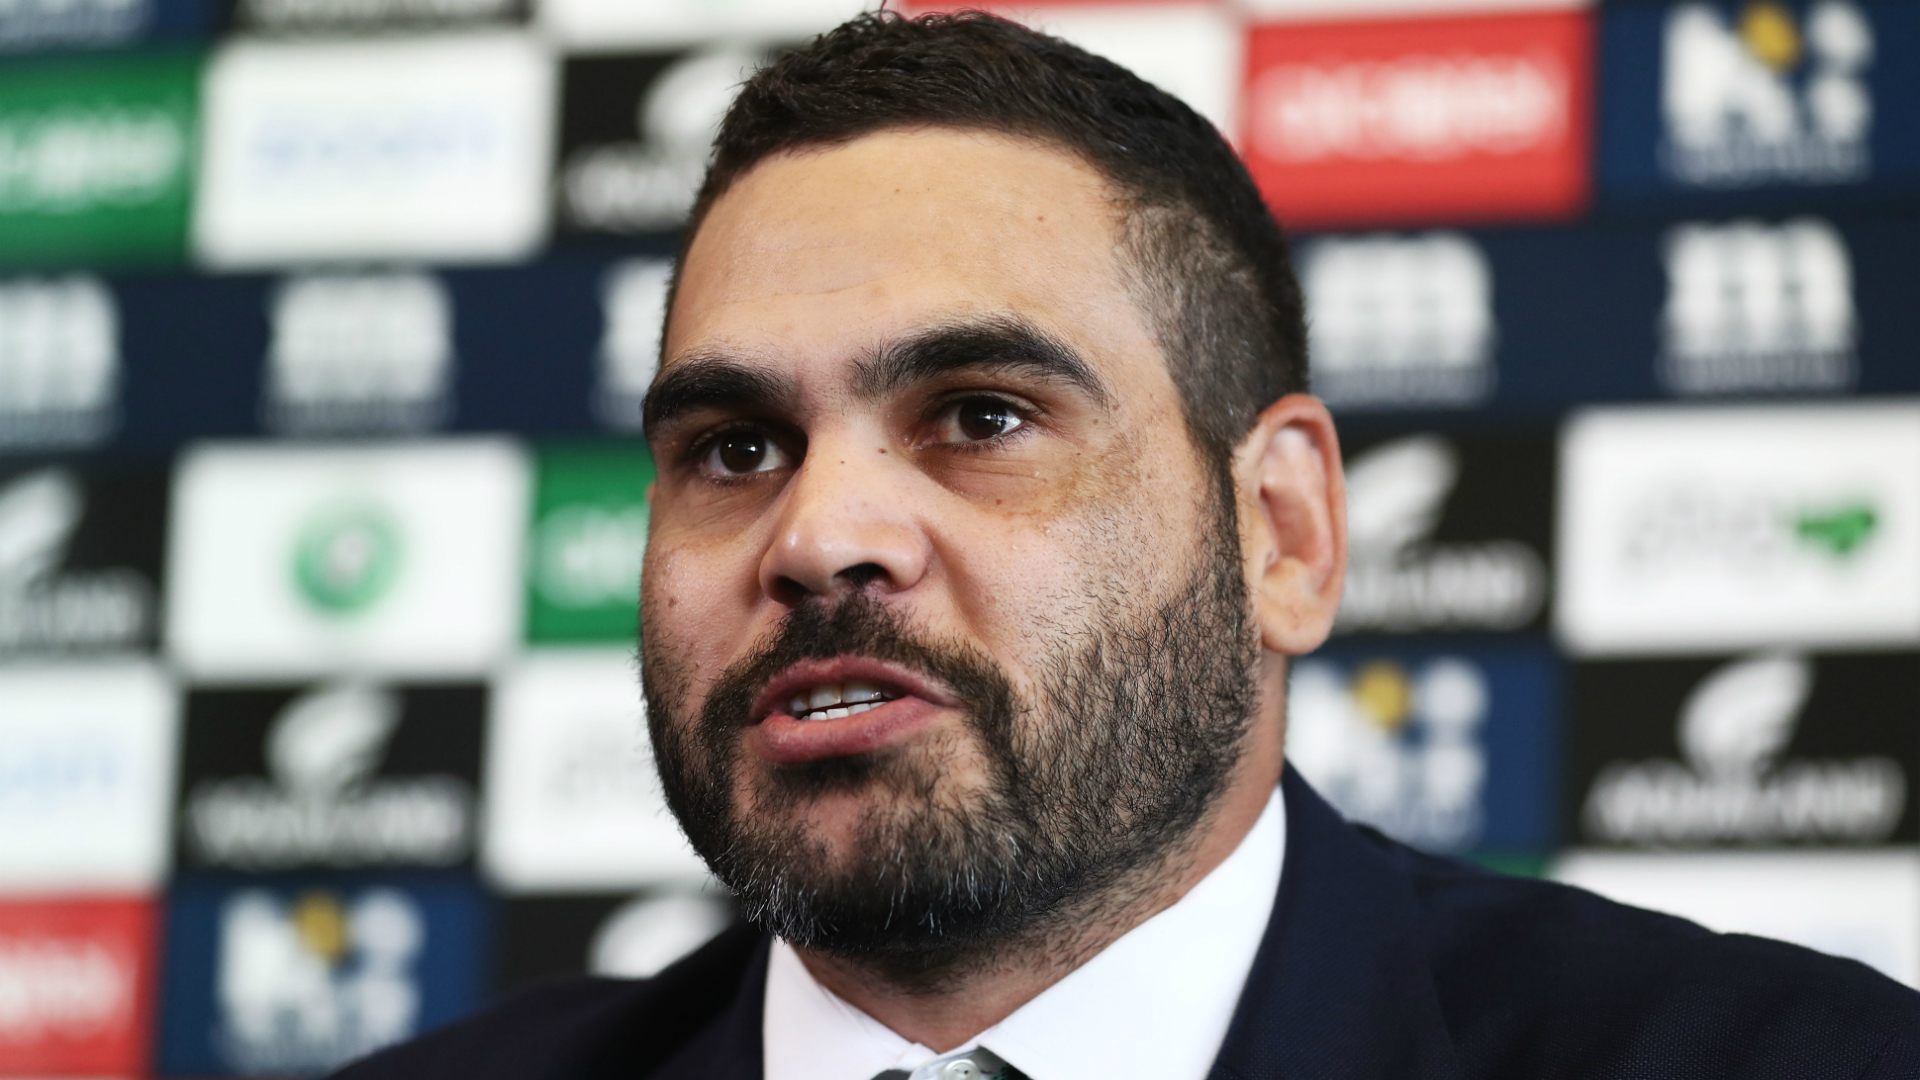 Greg Inglis retired on Monday and the 32-year-old star told reporters he walked away on his own terms.